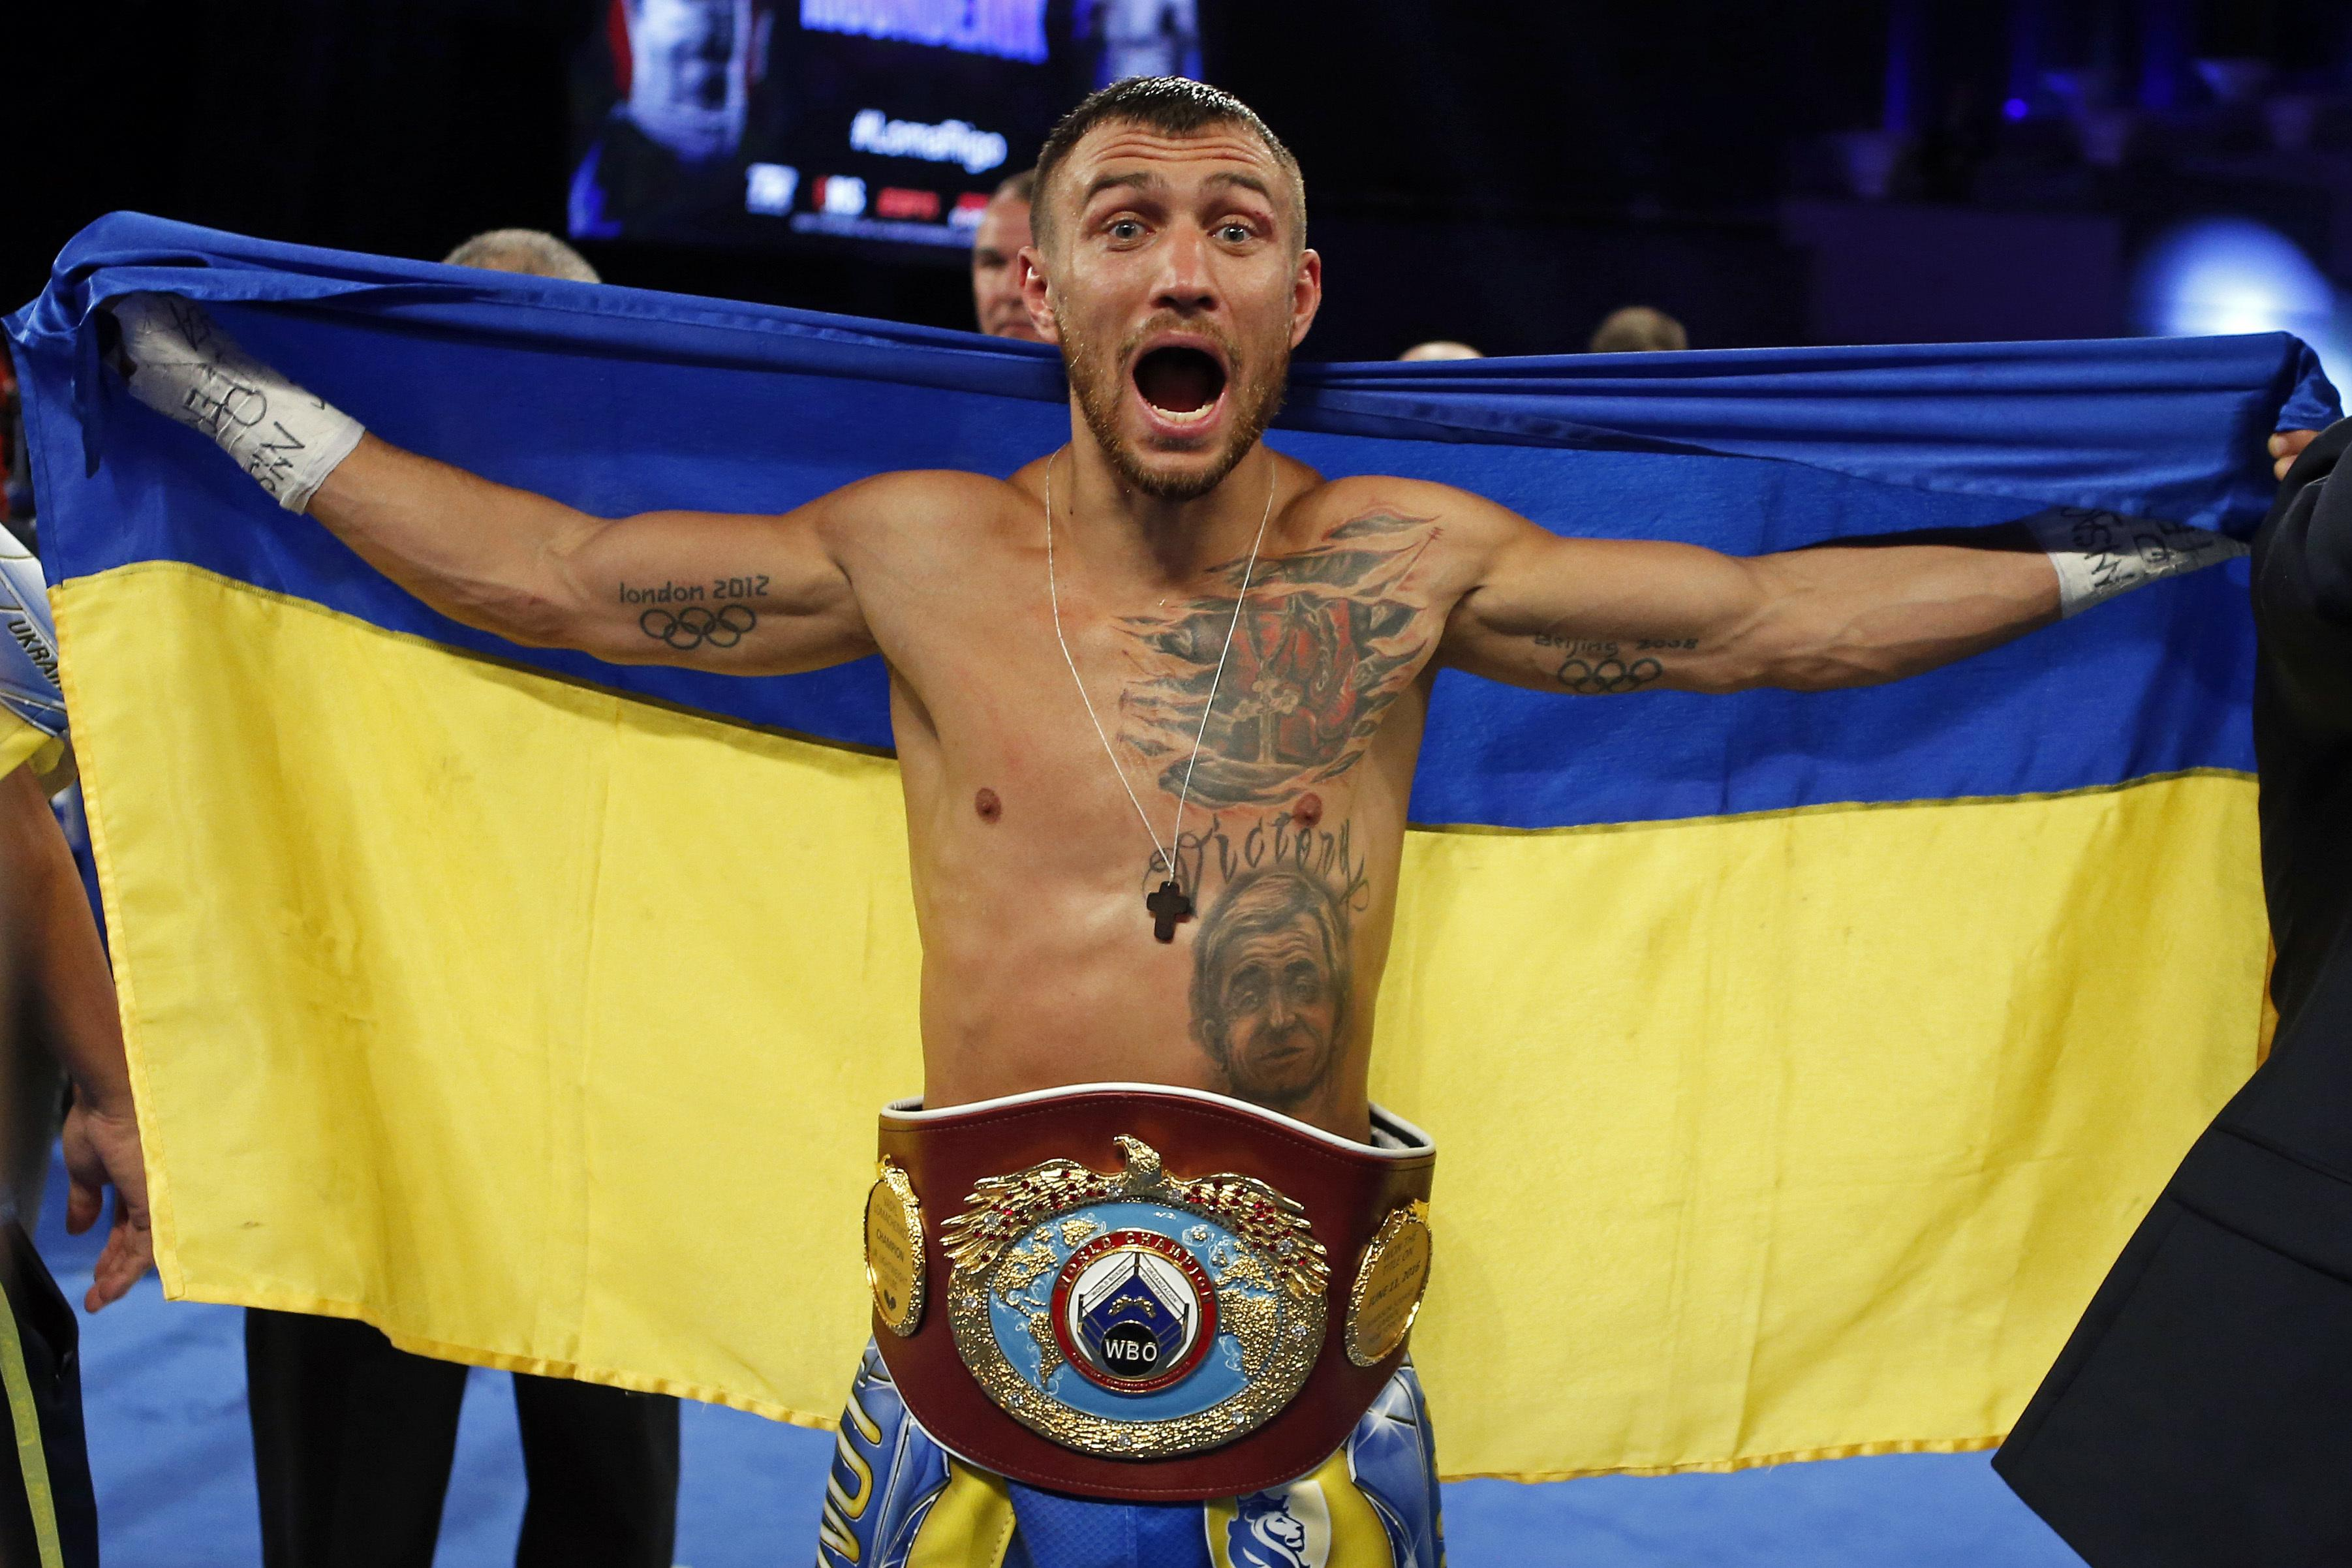 Vasyl Lomachenko is regarded as one of the best pound for pound fighters in boxing